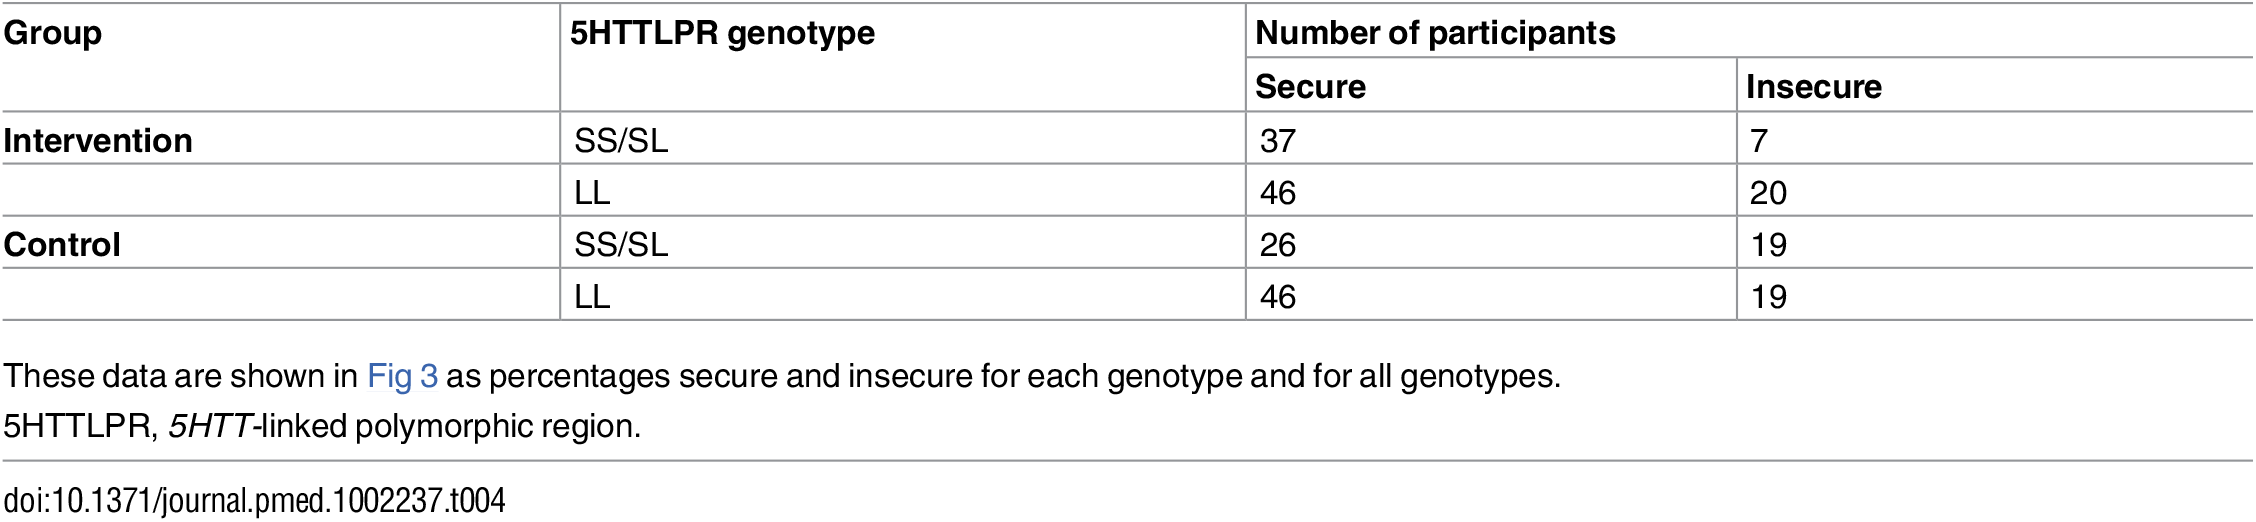 Attachment outcomes for each genotype in the intervention and control groups.